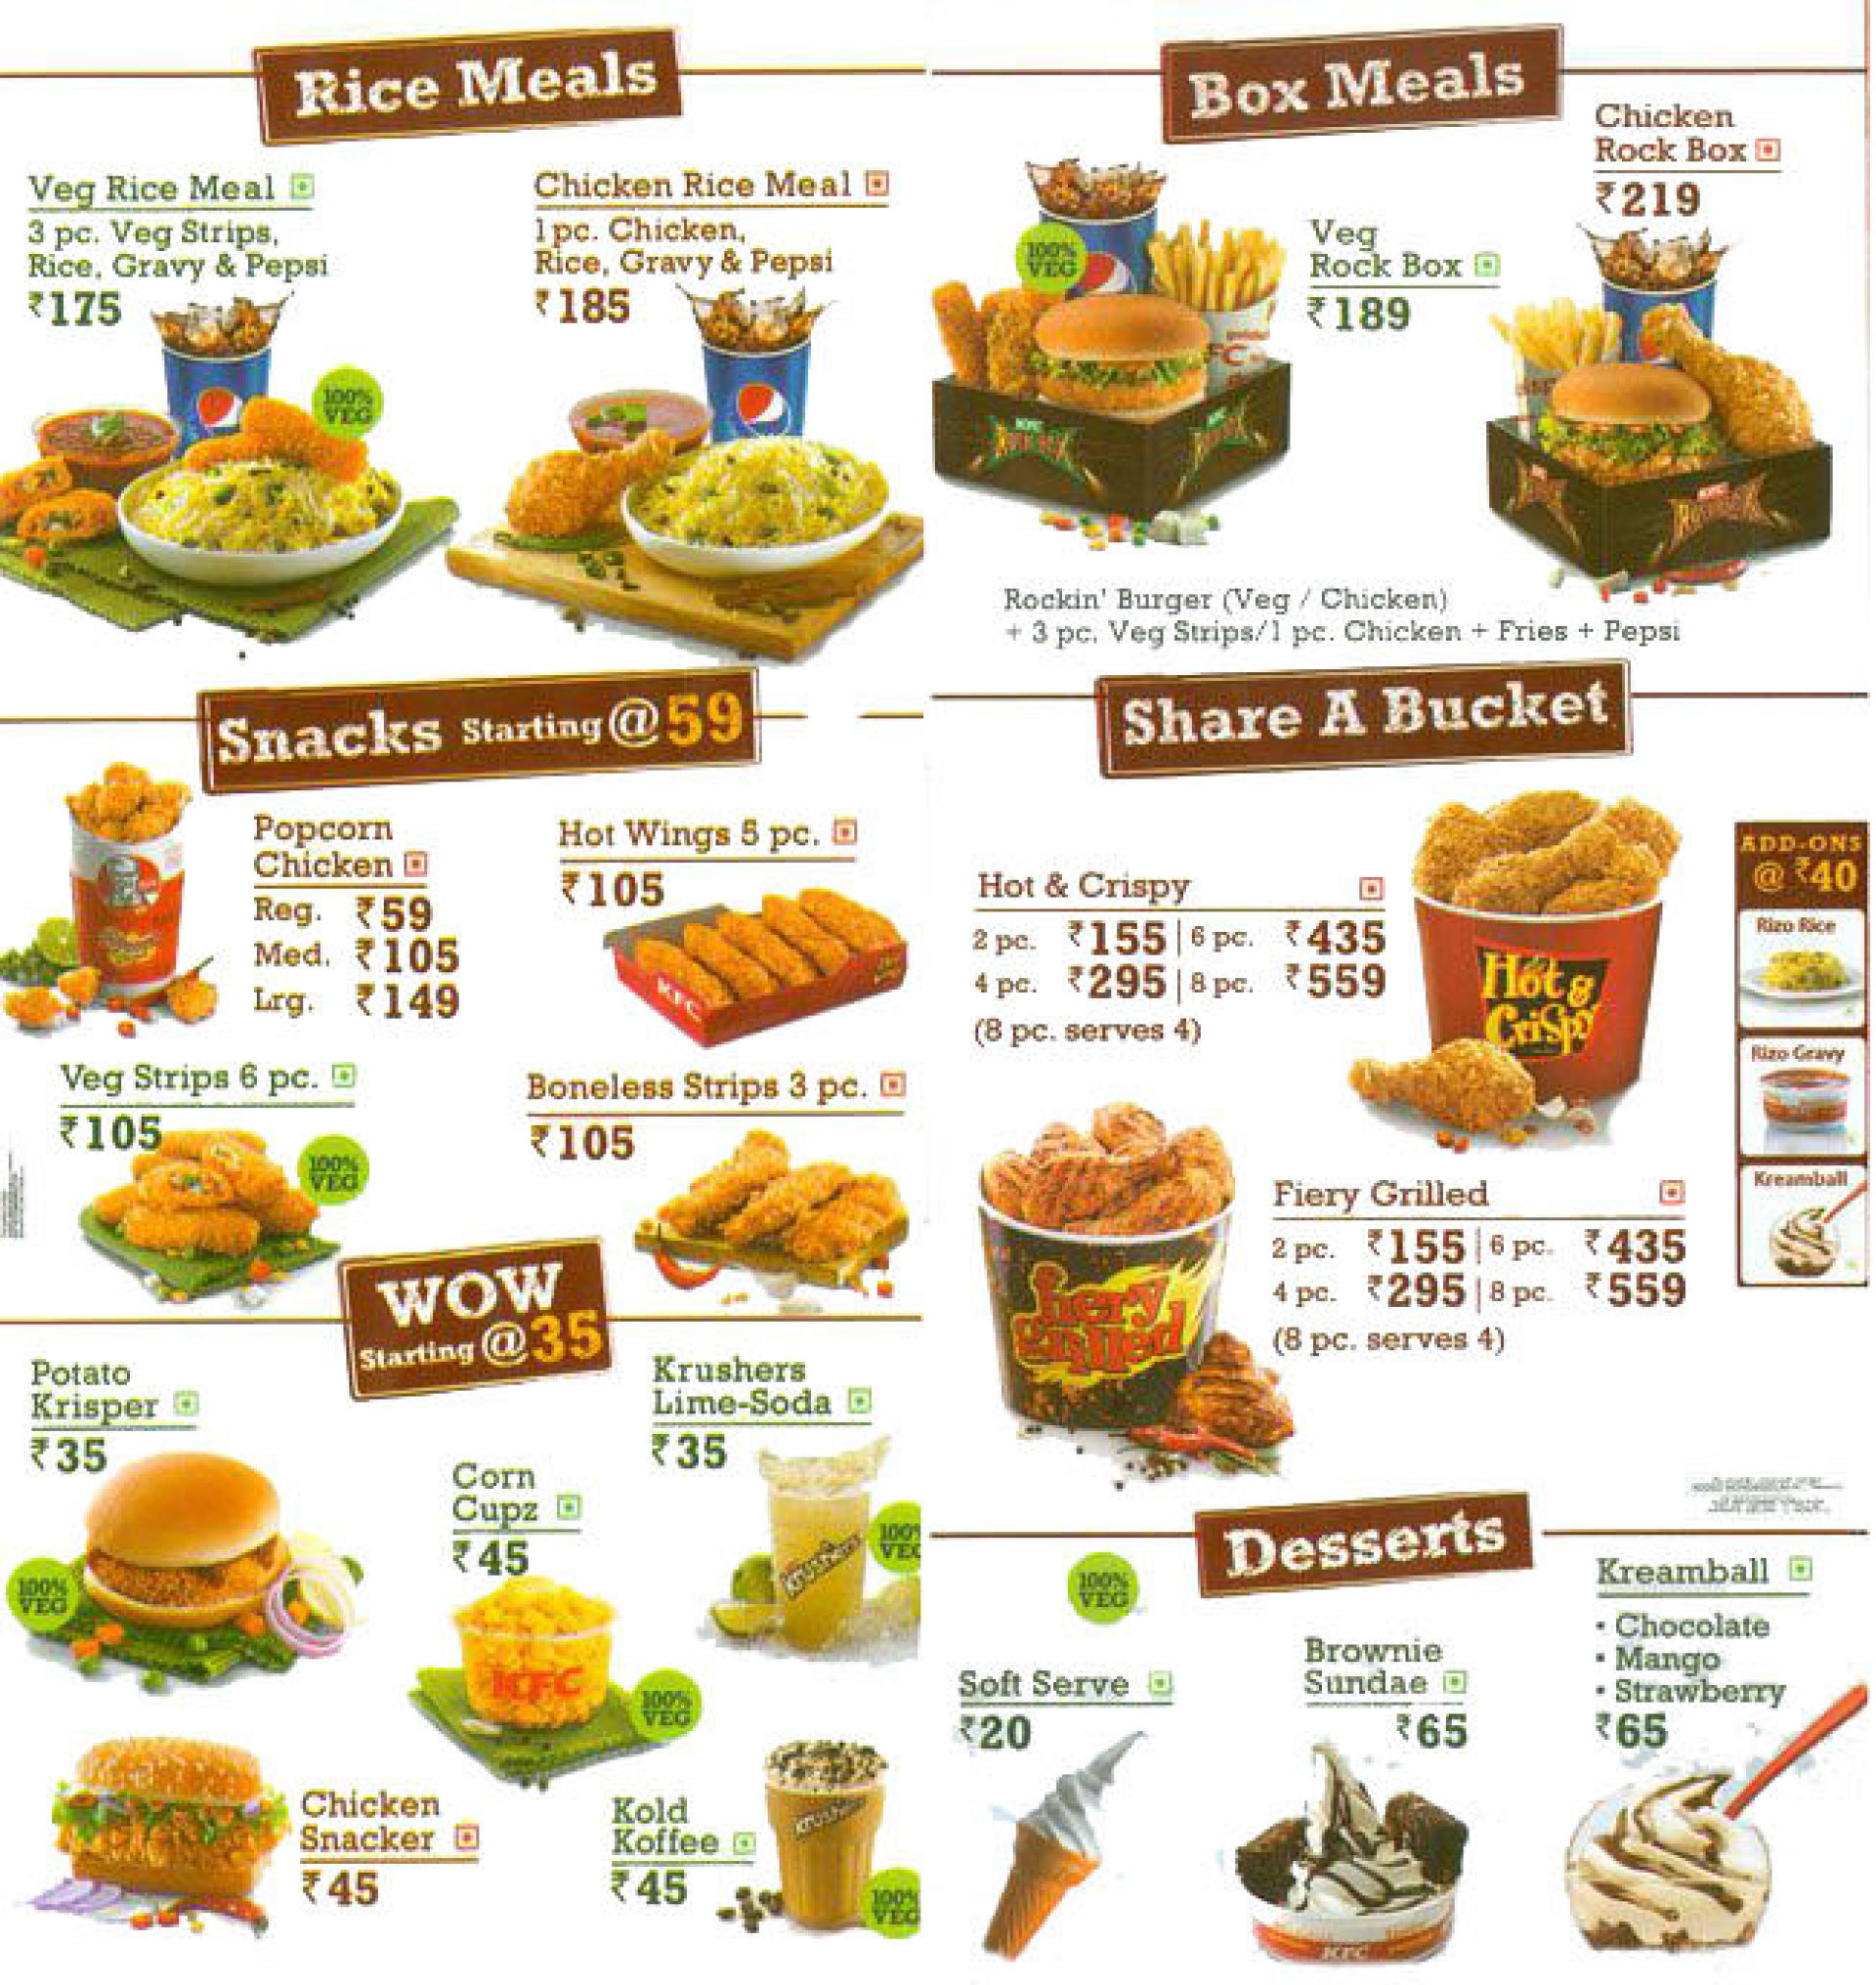 Kfc Food Menu With Price